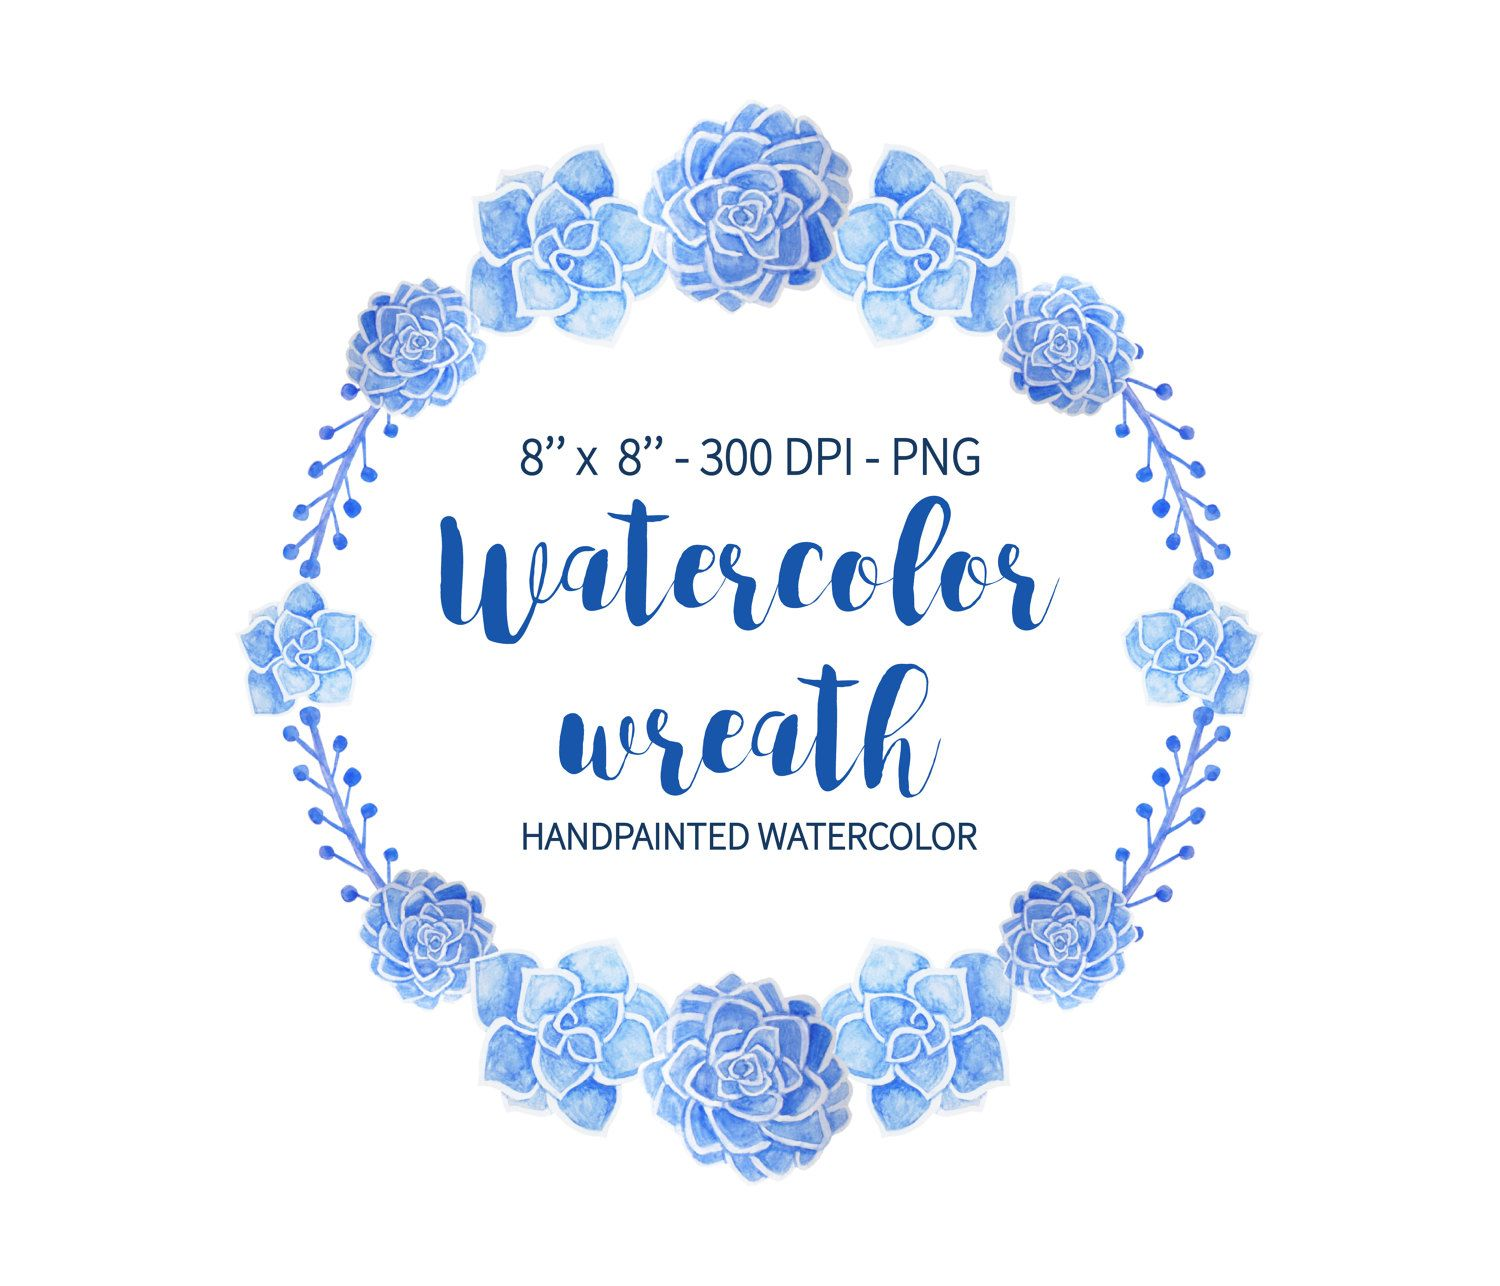 Succulent clipart wreath watercolor clipart watercolor wreath succulent clipart wreath watercolor clipart watercolor wreath flower wreath succulent wreath wedding wreath hand painted wreath png izmirmasajfo Gallery